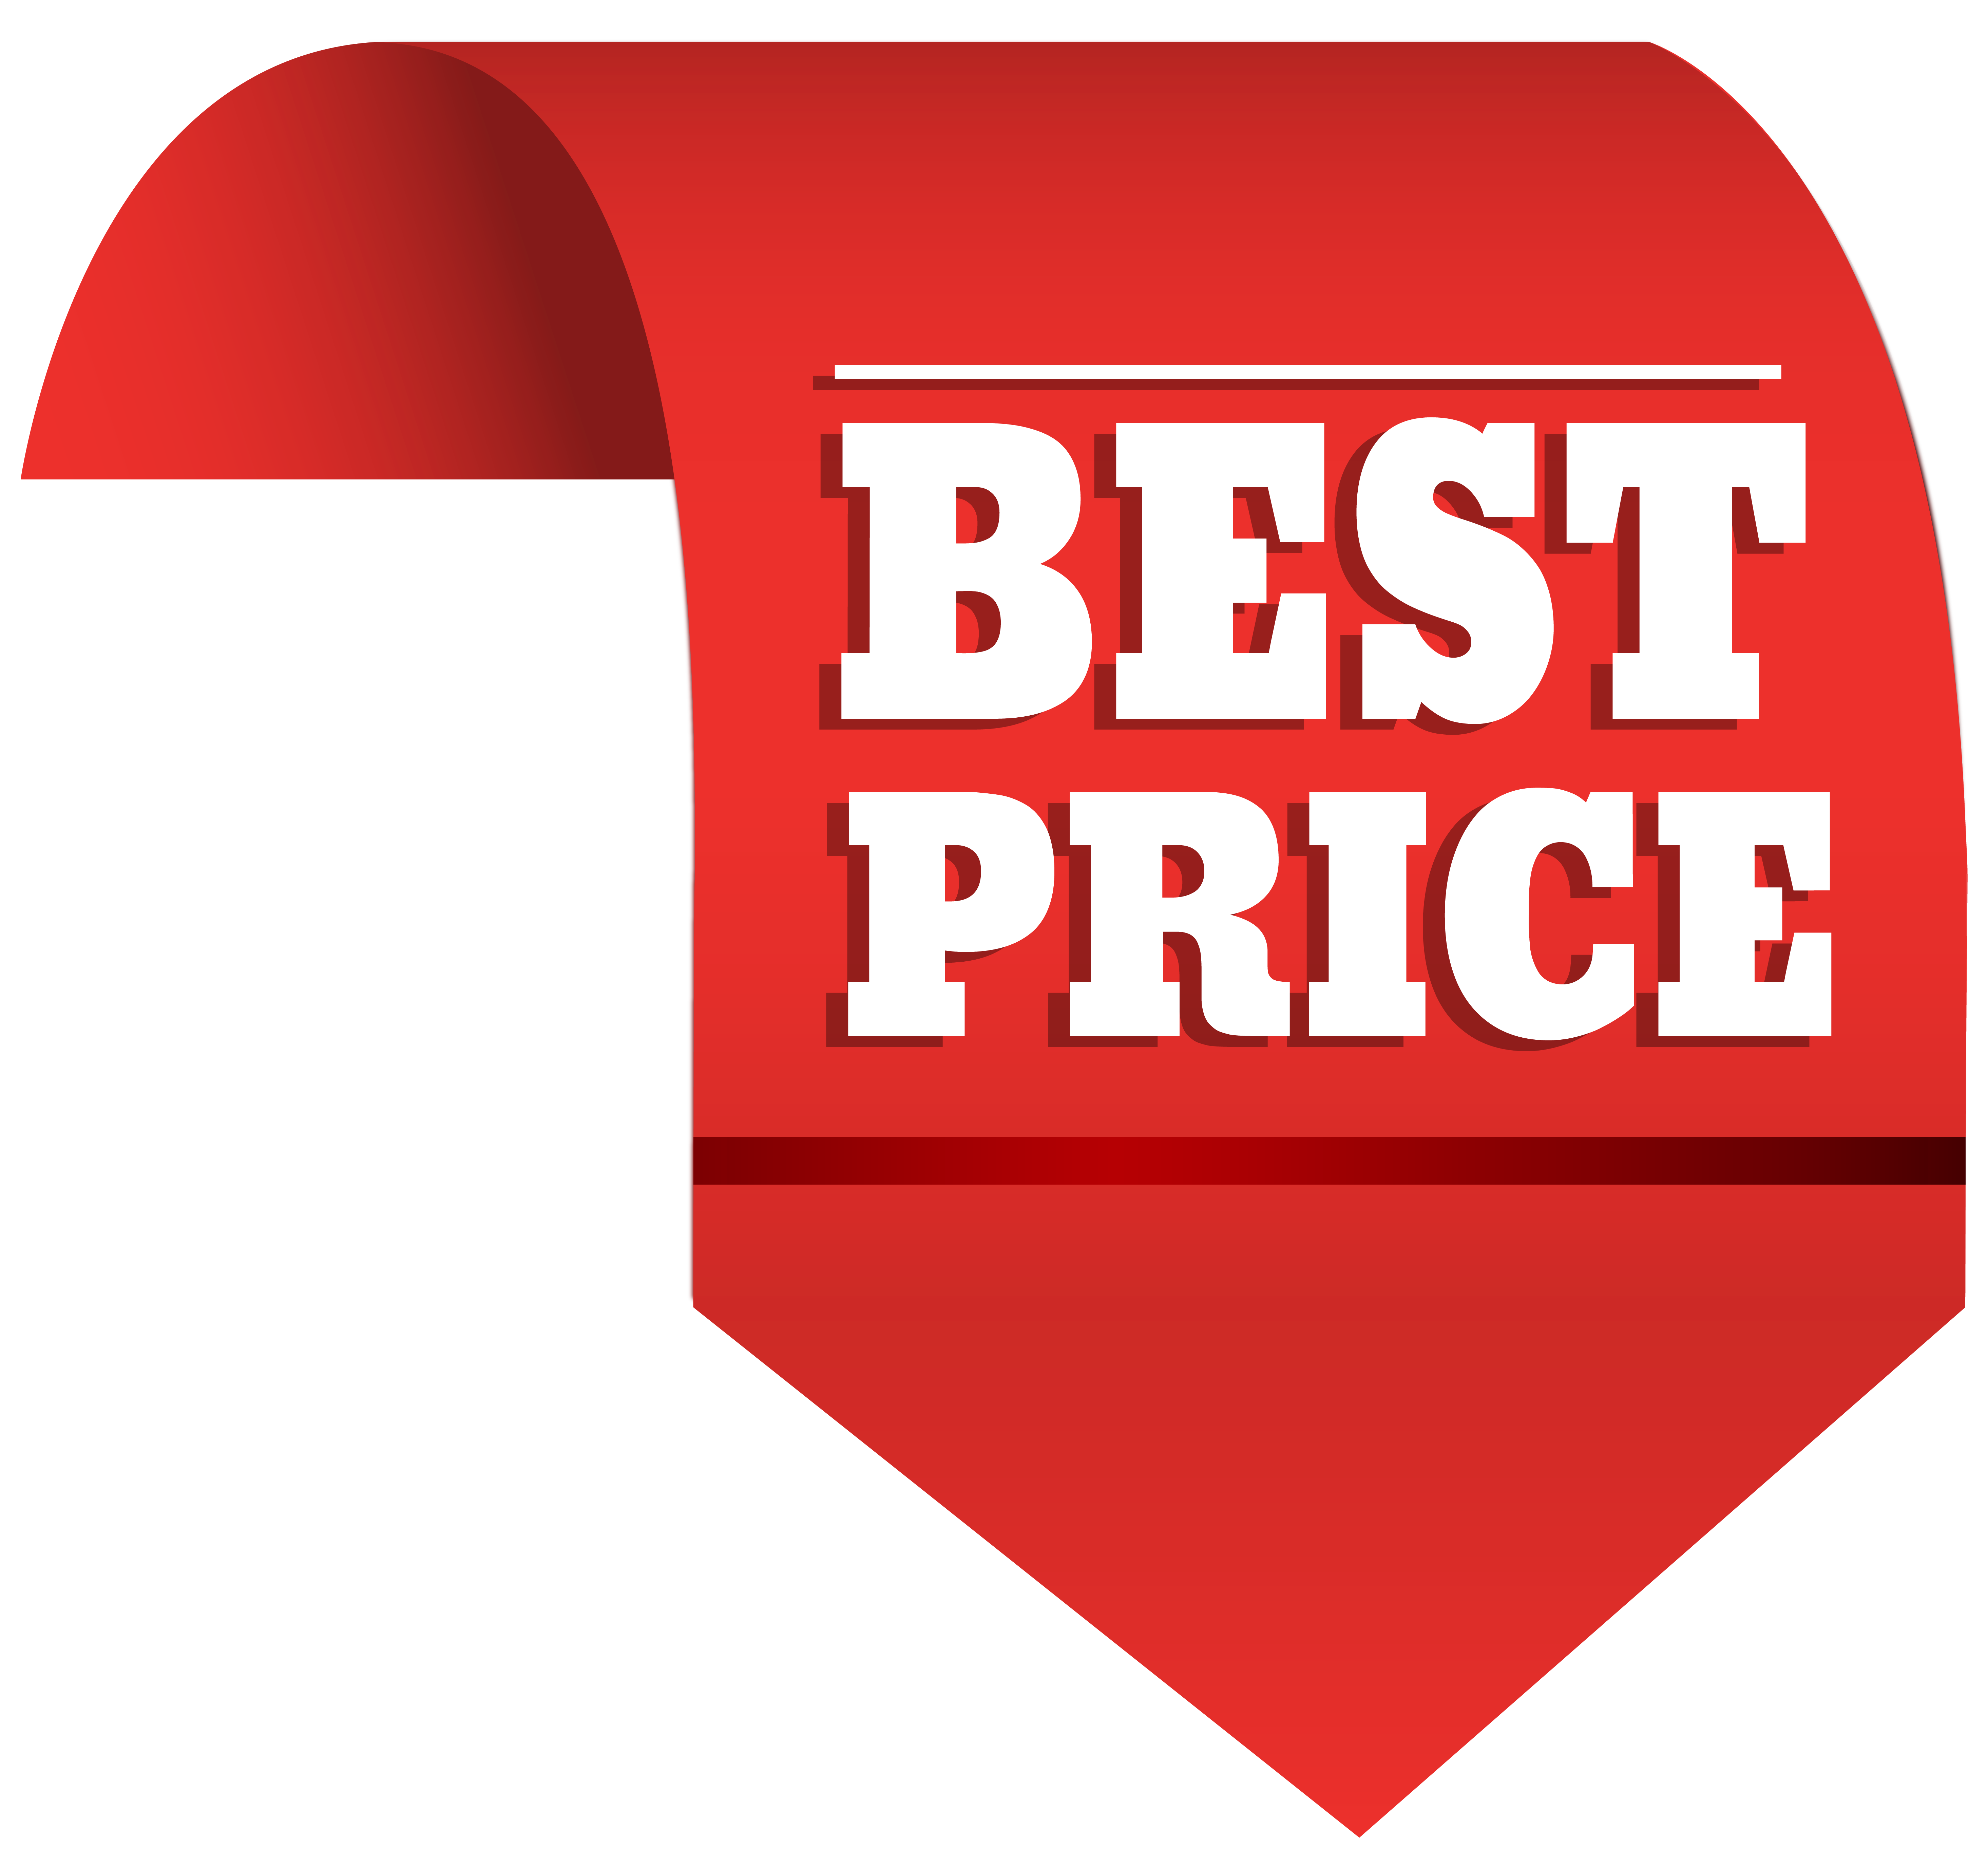 Best price label png. Transparent prices jpg freeuse stock